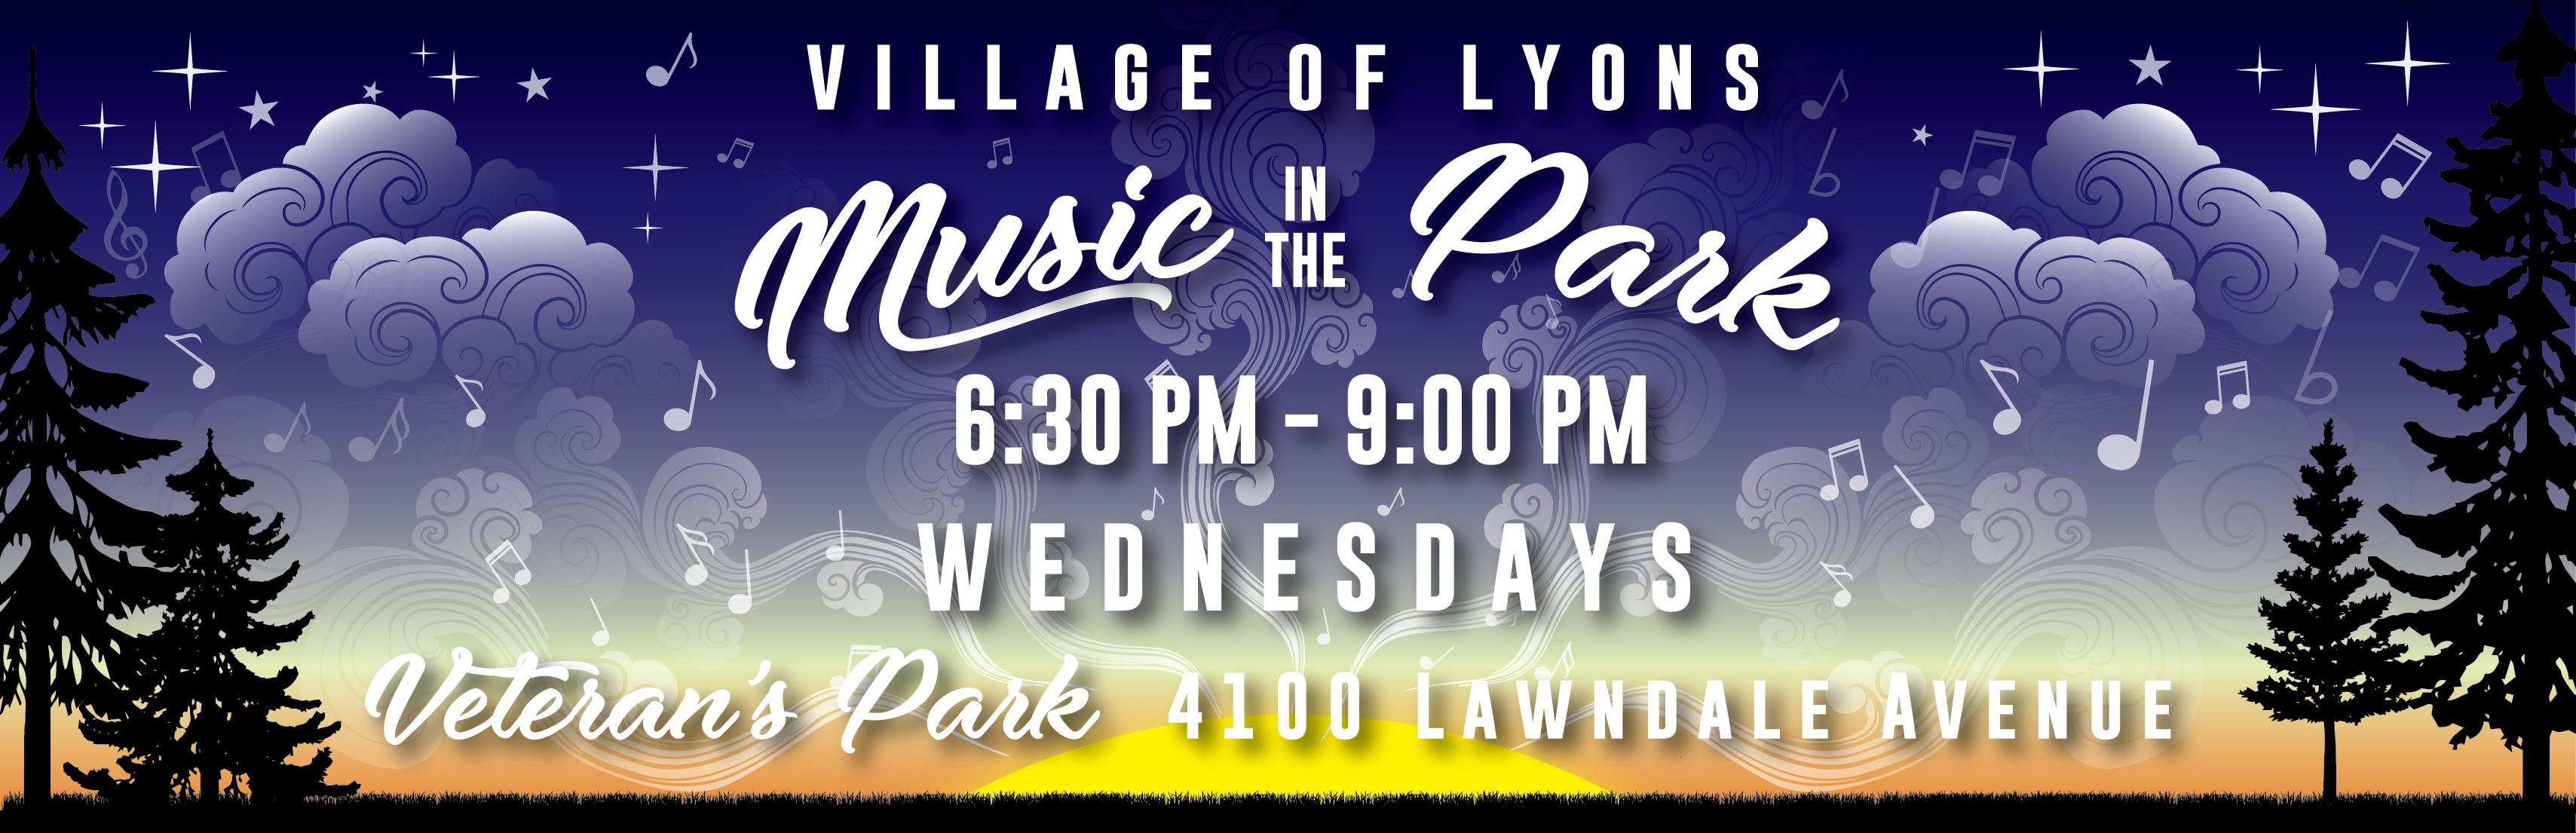 Lyons Music in the Park 2017